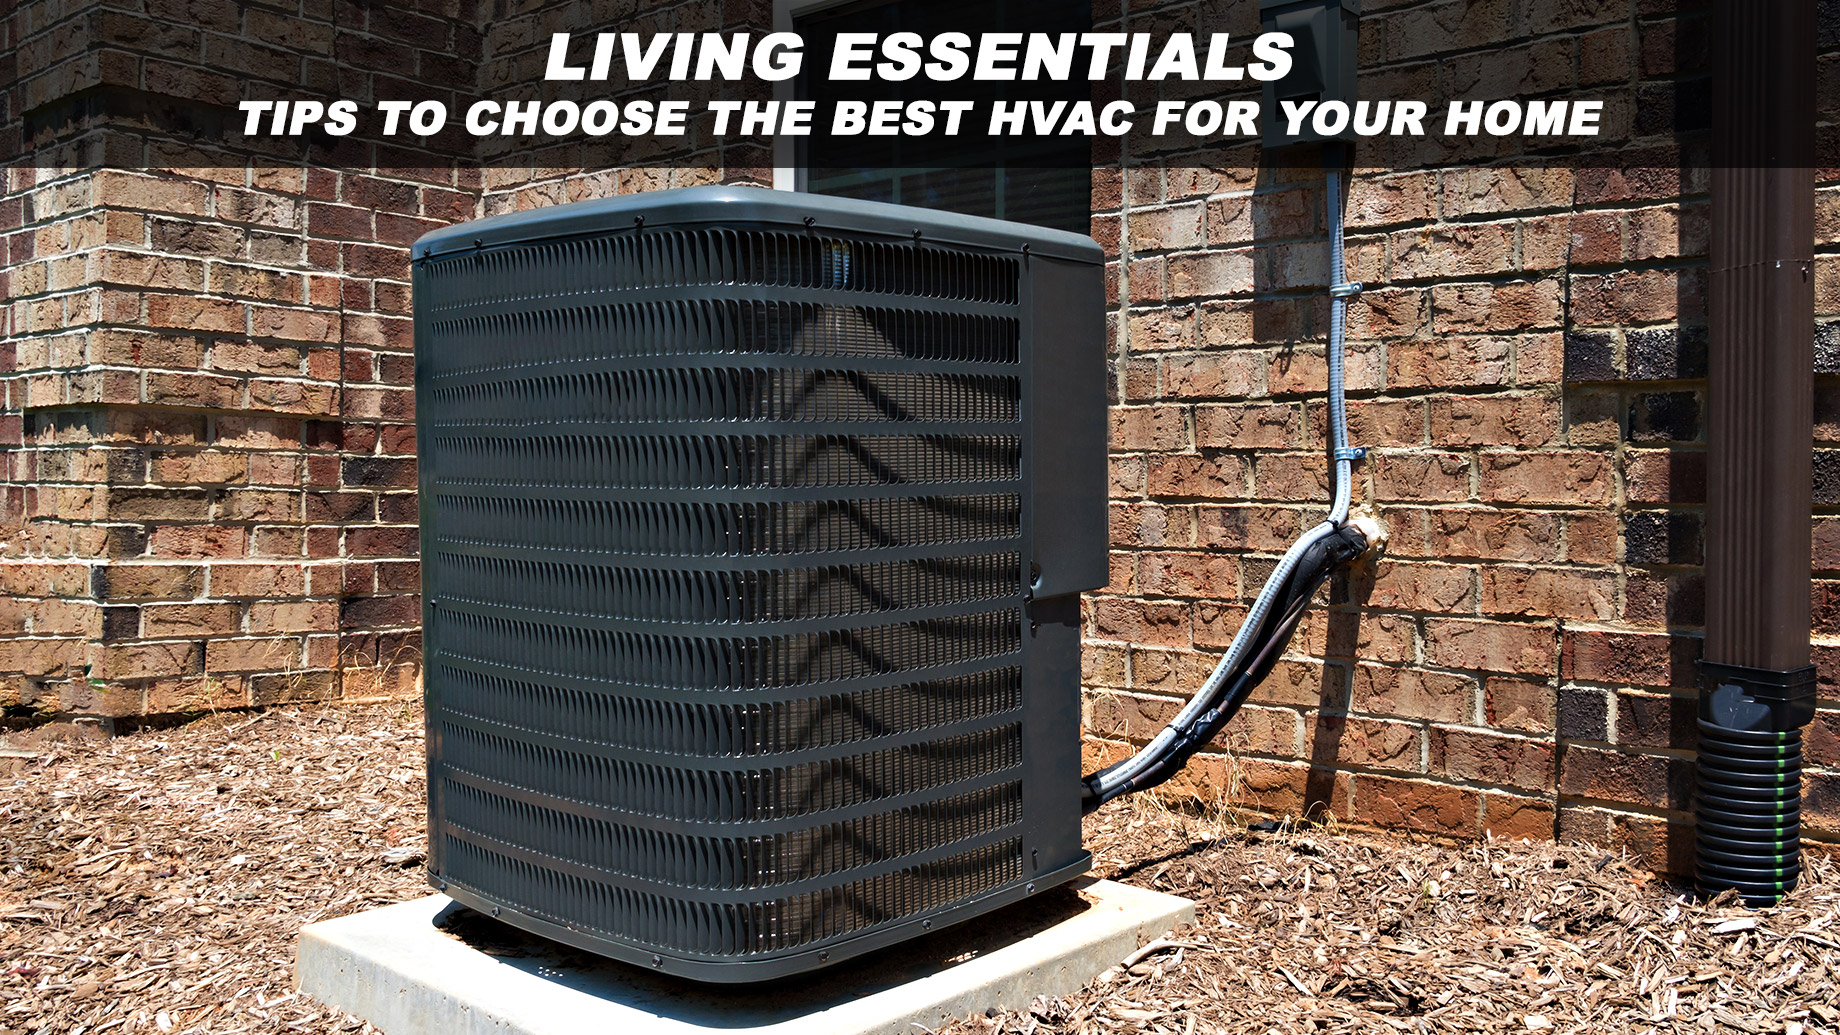 Living Essentials - Tips To Choose The Best HVAC For Your Home